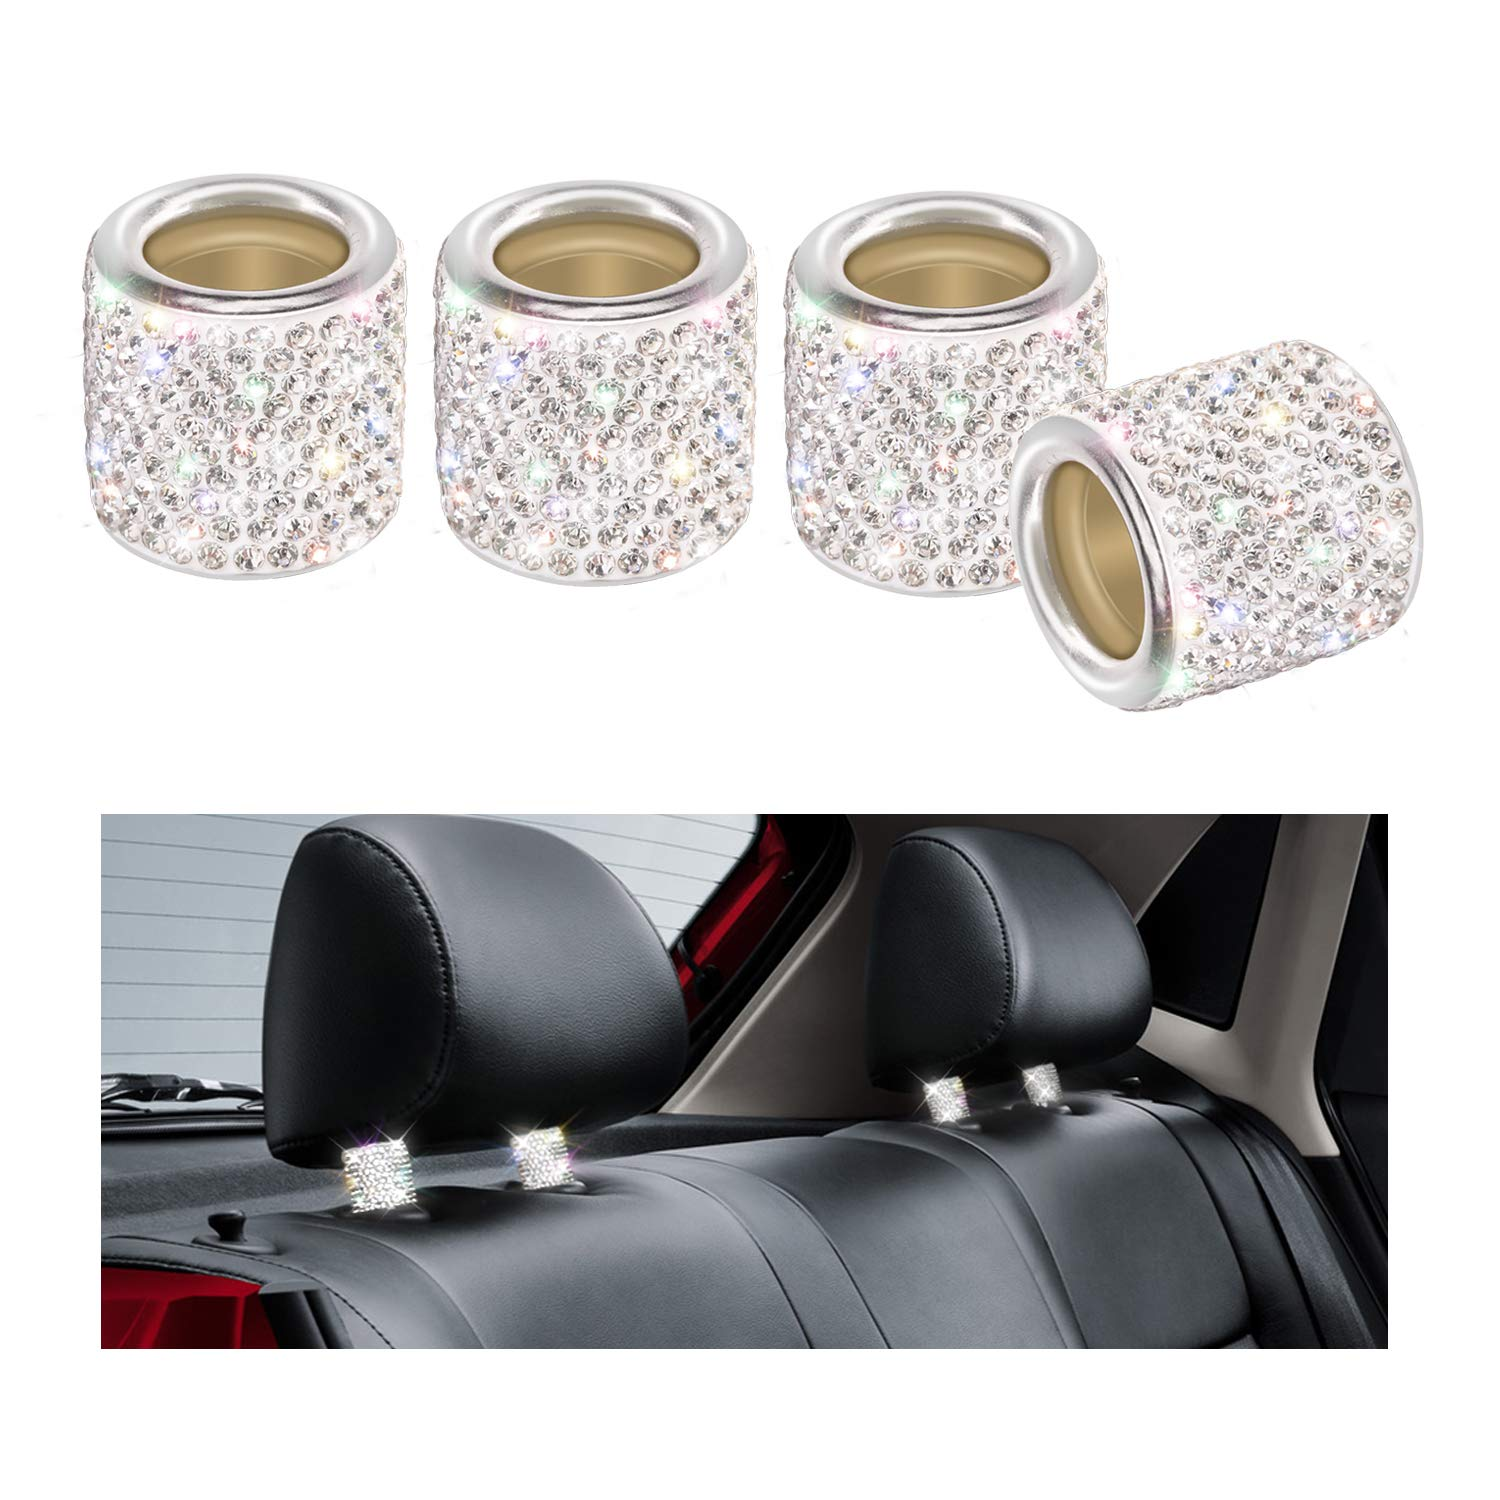 YINUO 4 Pezzi Universale Chrome Bling Cristallo Gioielli Poggiatesta Sedili Collari Decoration Per Auto Veicolo (Argento) Shenzhen yinuoweixun E-commerce Co. LTD